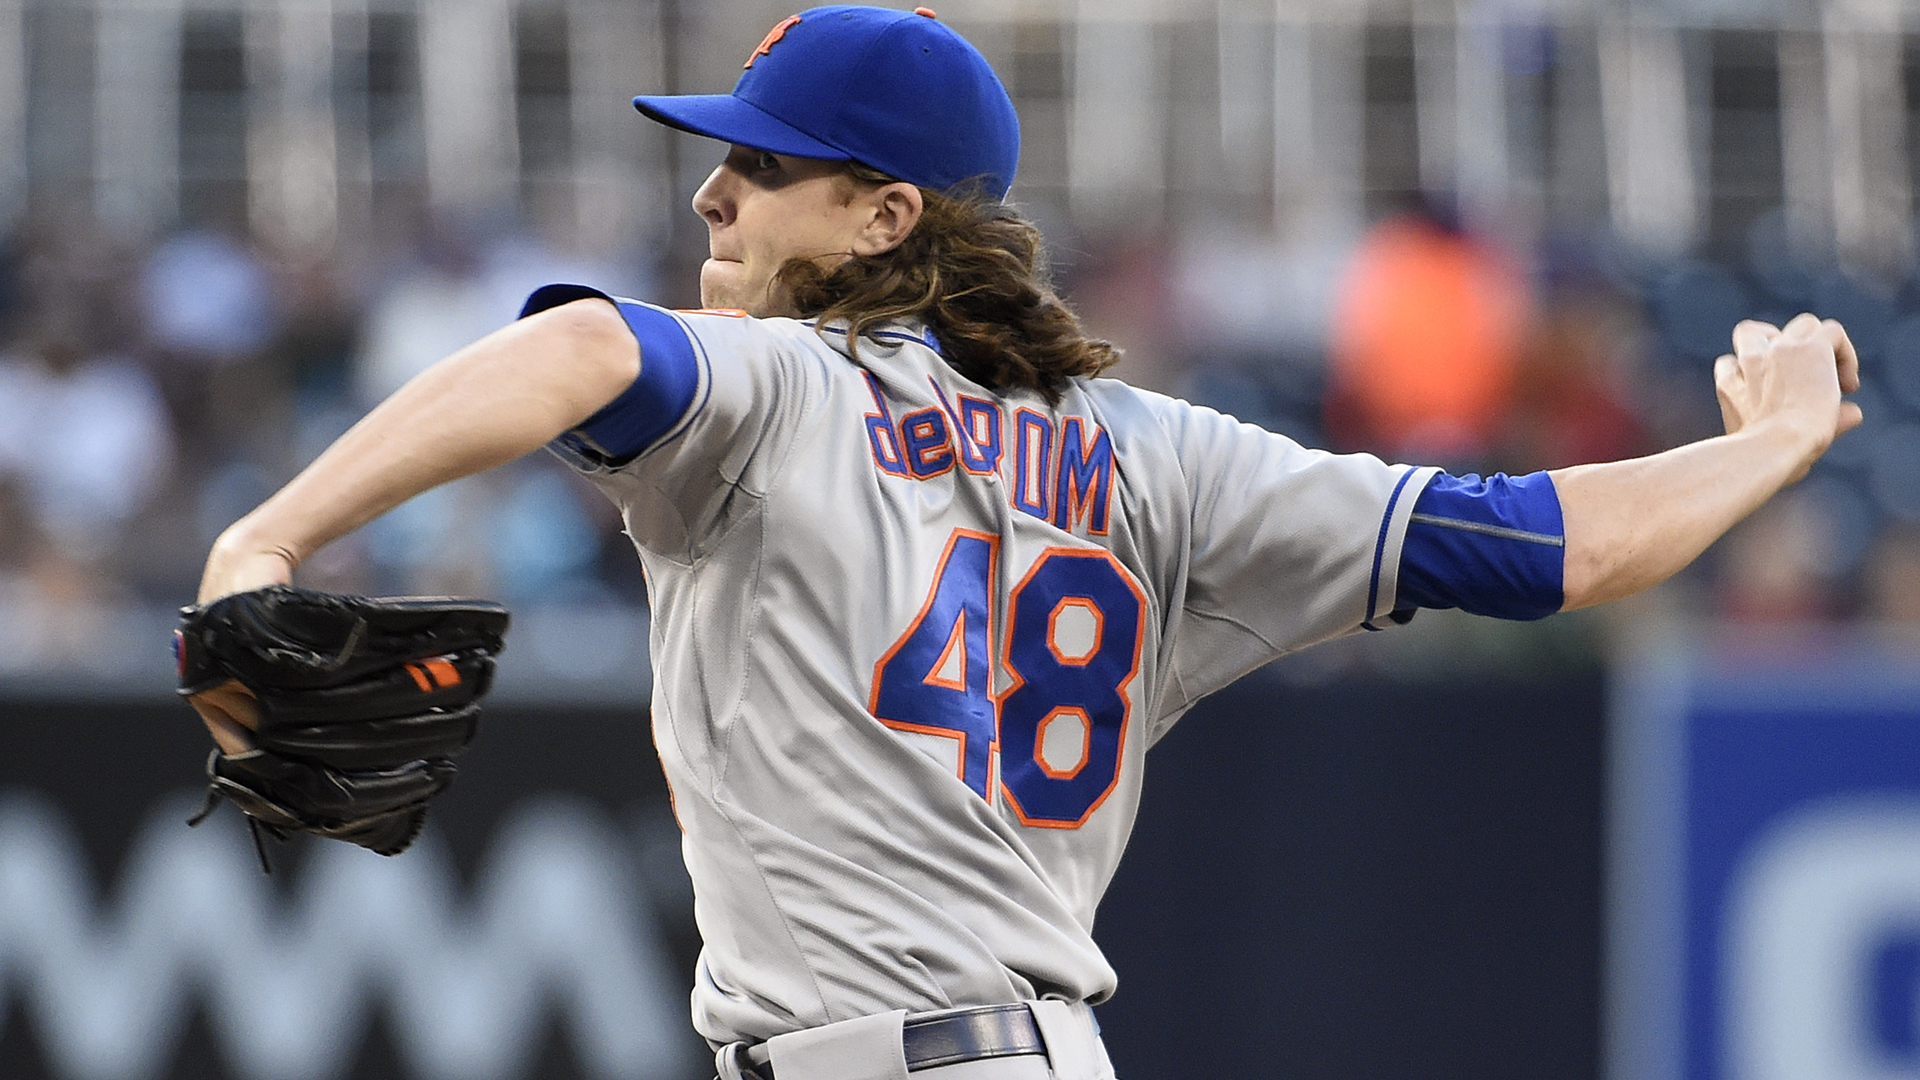 Mets' deGrom leaves game with hyperextended right elbow